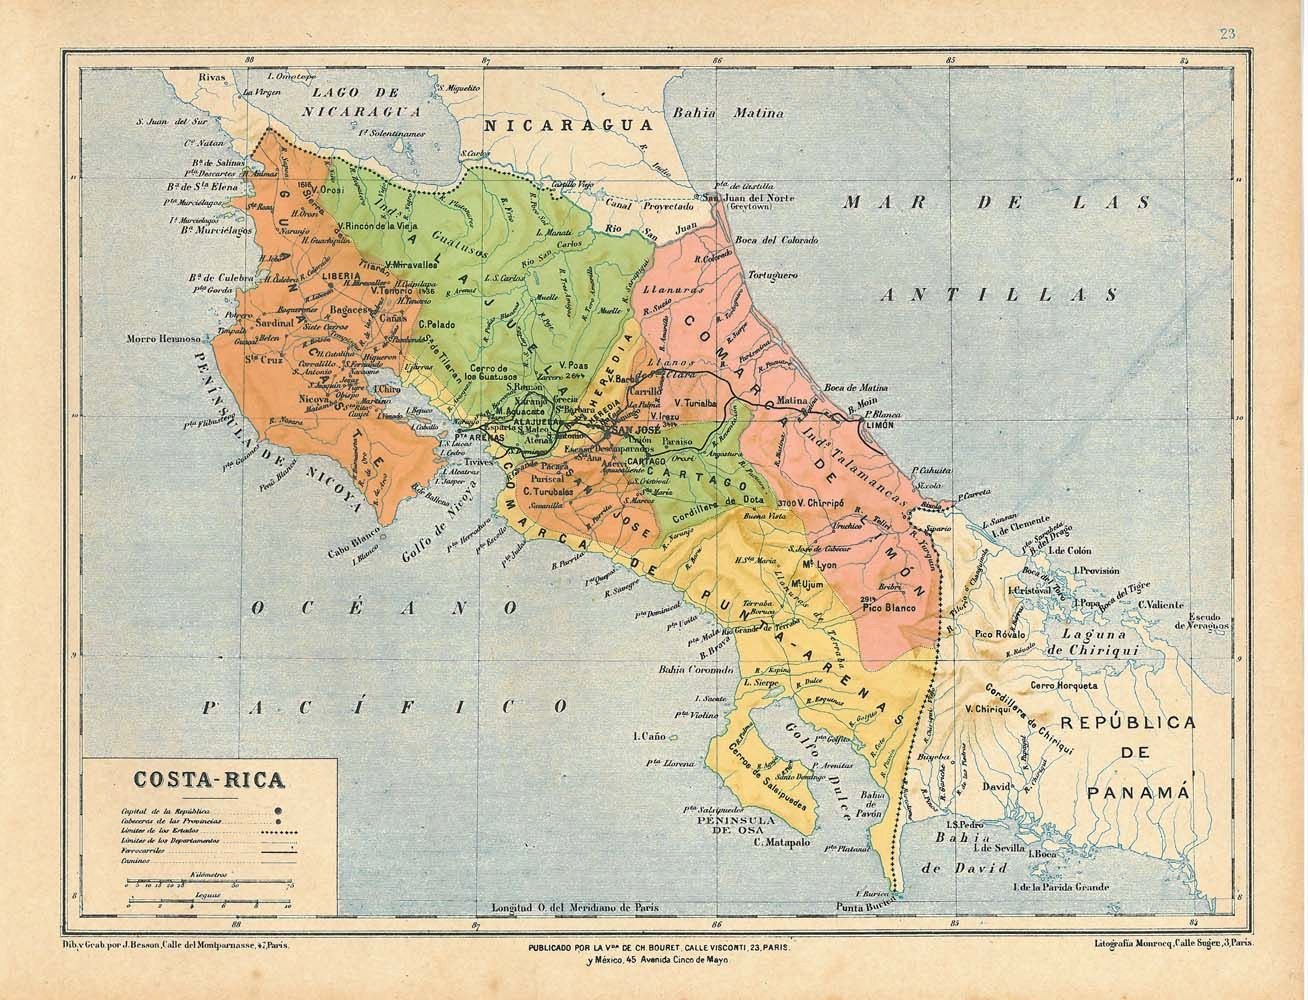 Costa rica map with geographical land forms including surrounding costa rica map with geographical land forms including surrounding bodies of water mountains rivers gumiabroncs Image collections